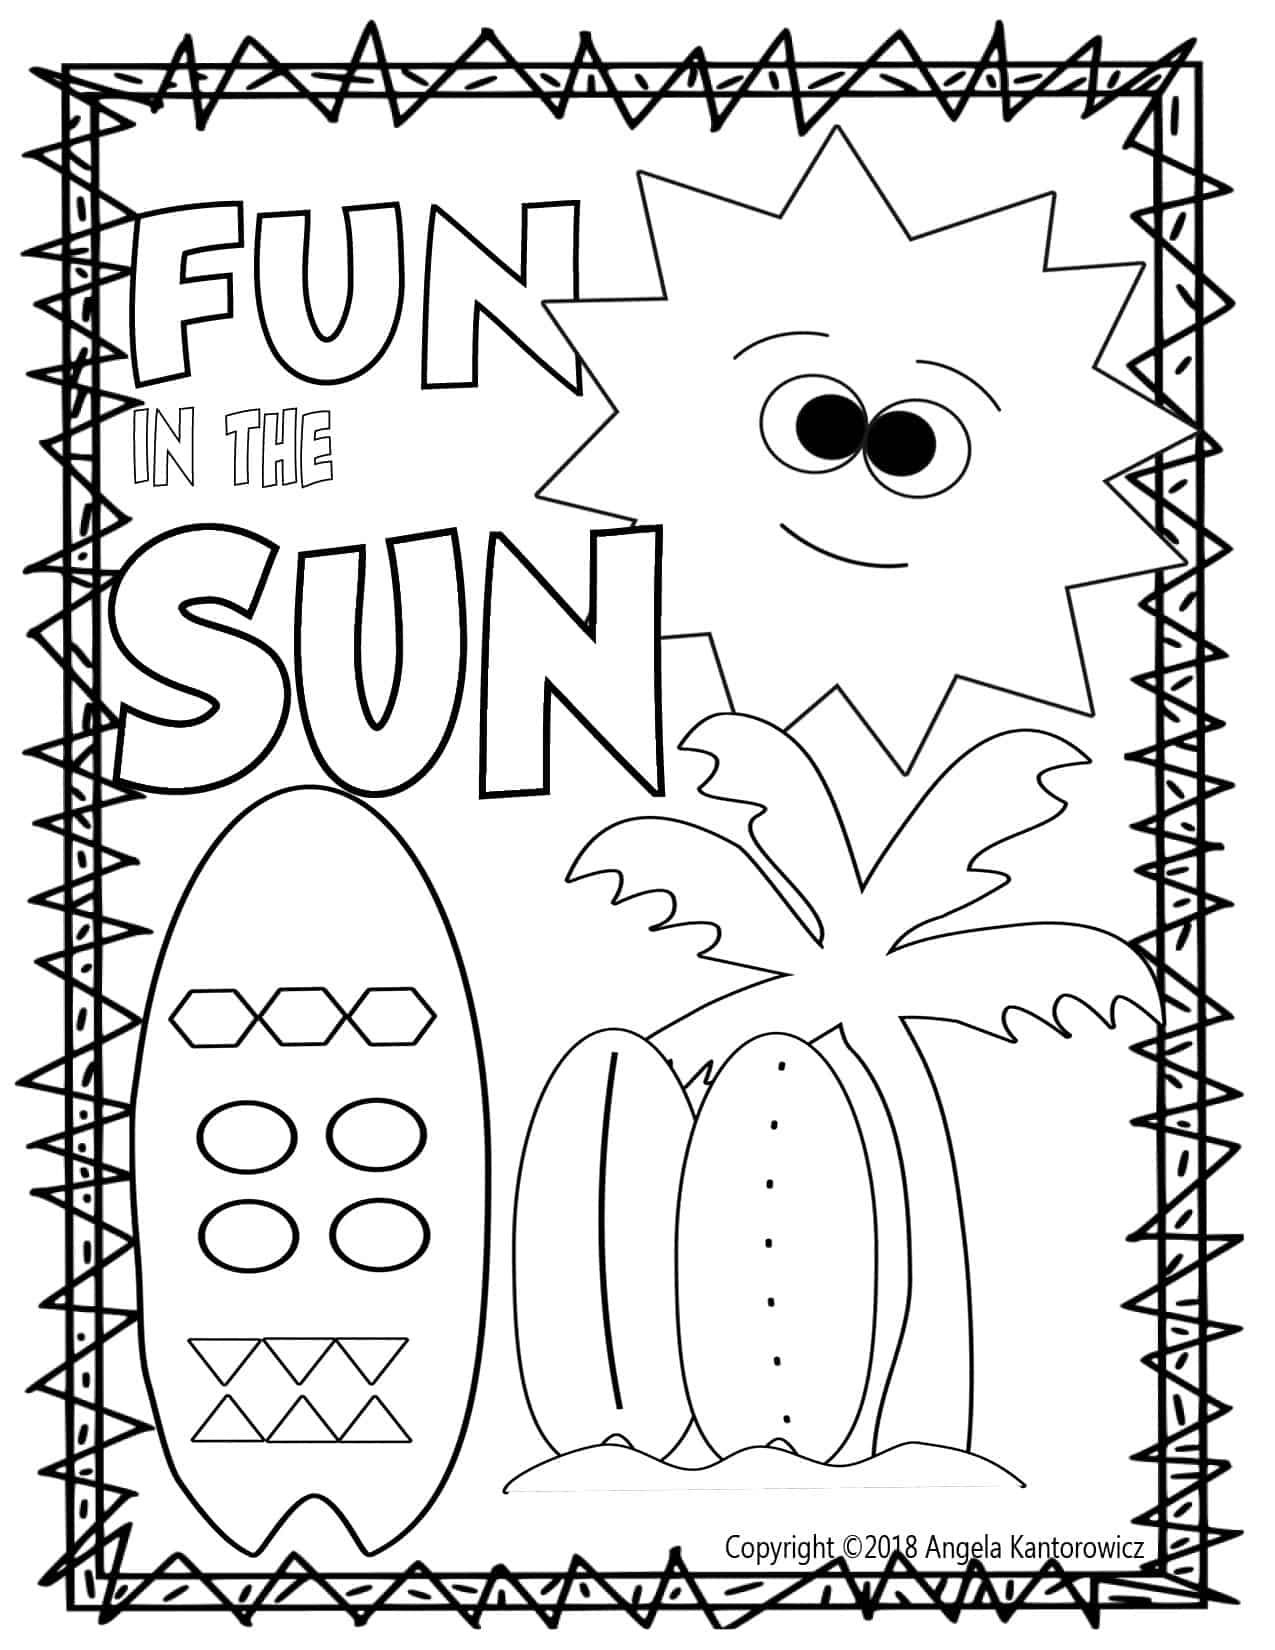 Fun In The Sun Color Sheet Making The Basics Fun